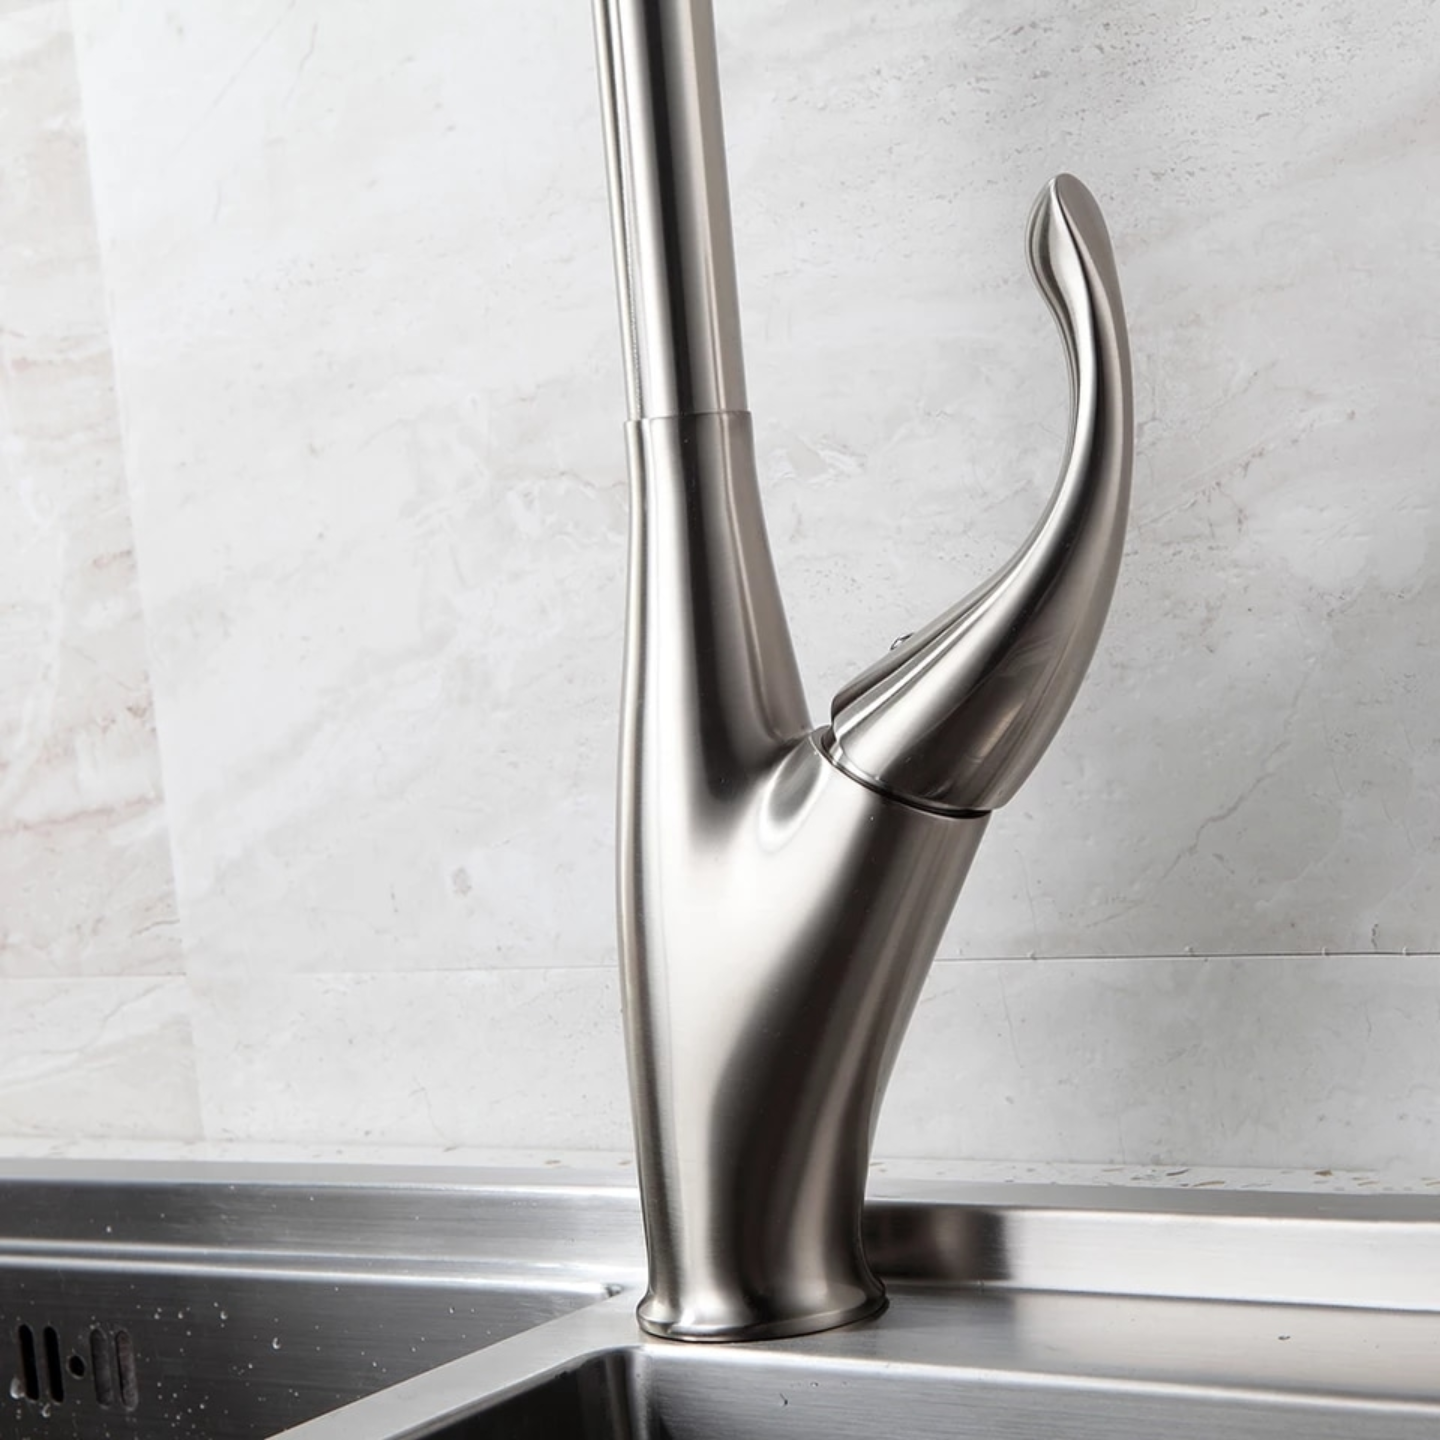 Pull Out Kitchen Tap Single Hole Handle Swivel 360 Degree